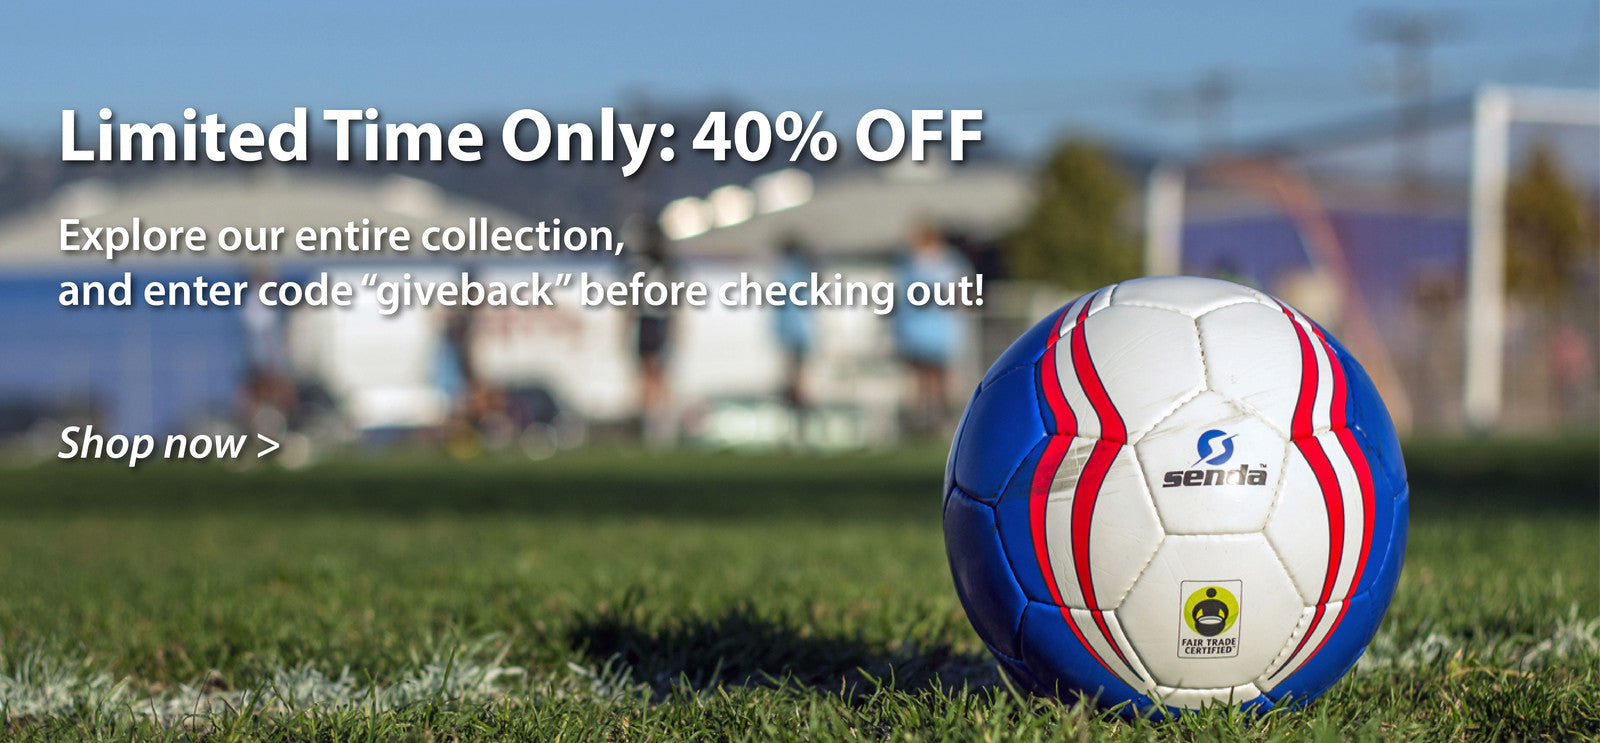 Limited Time Only: 40% OFF